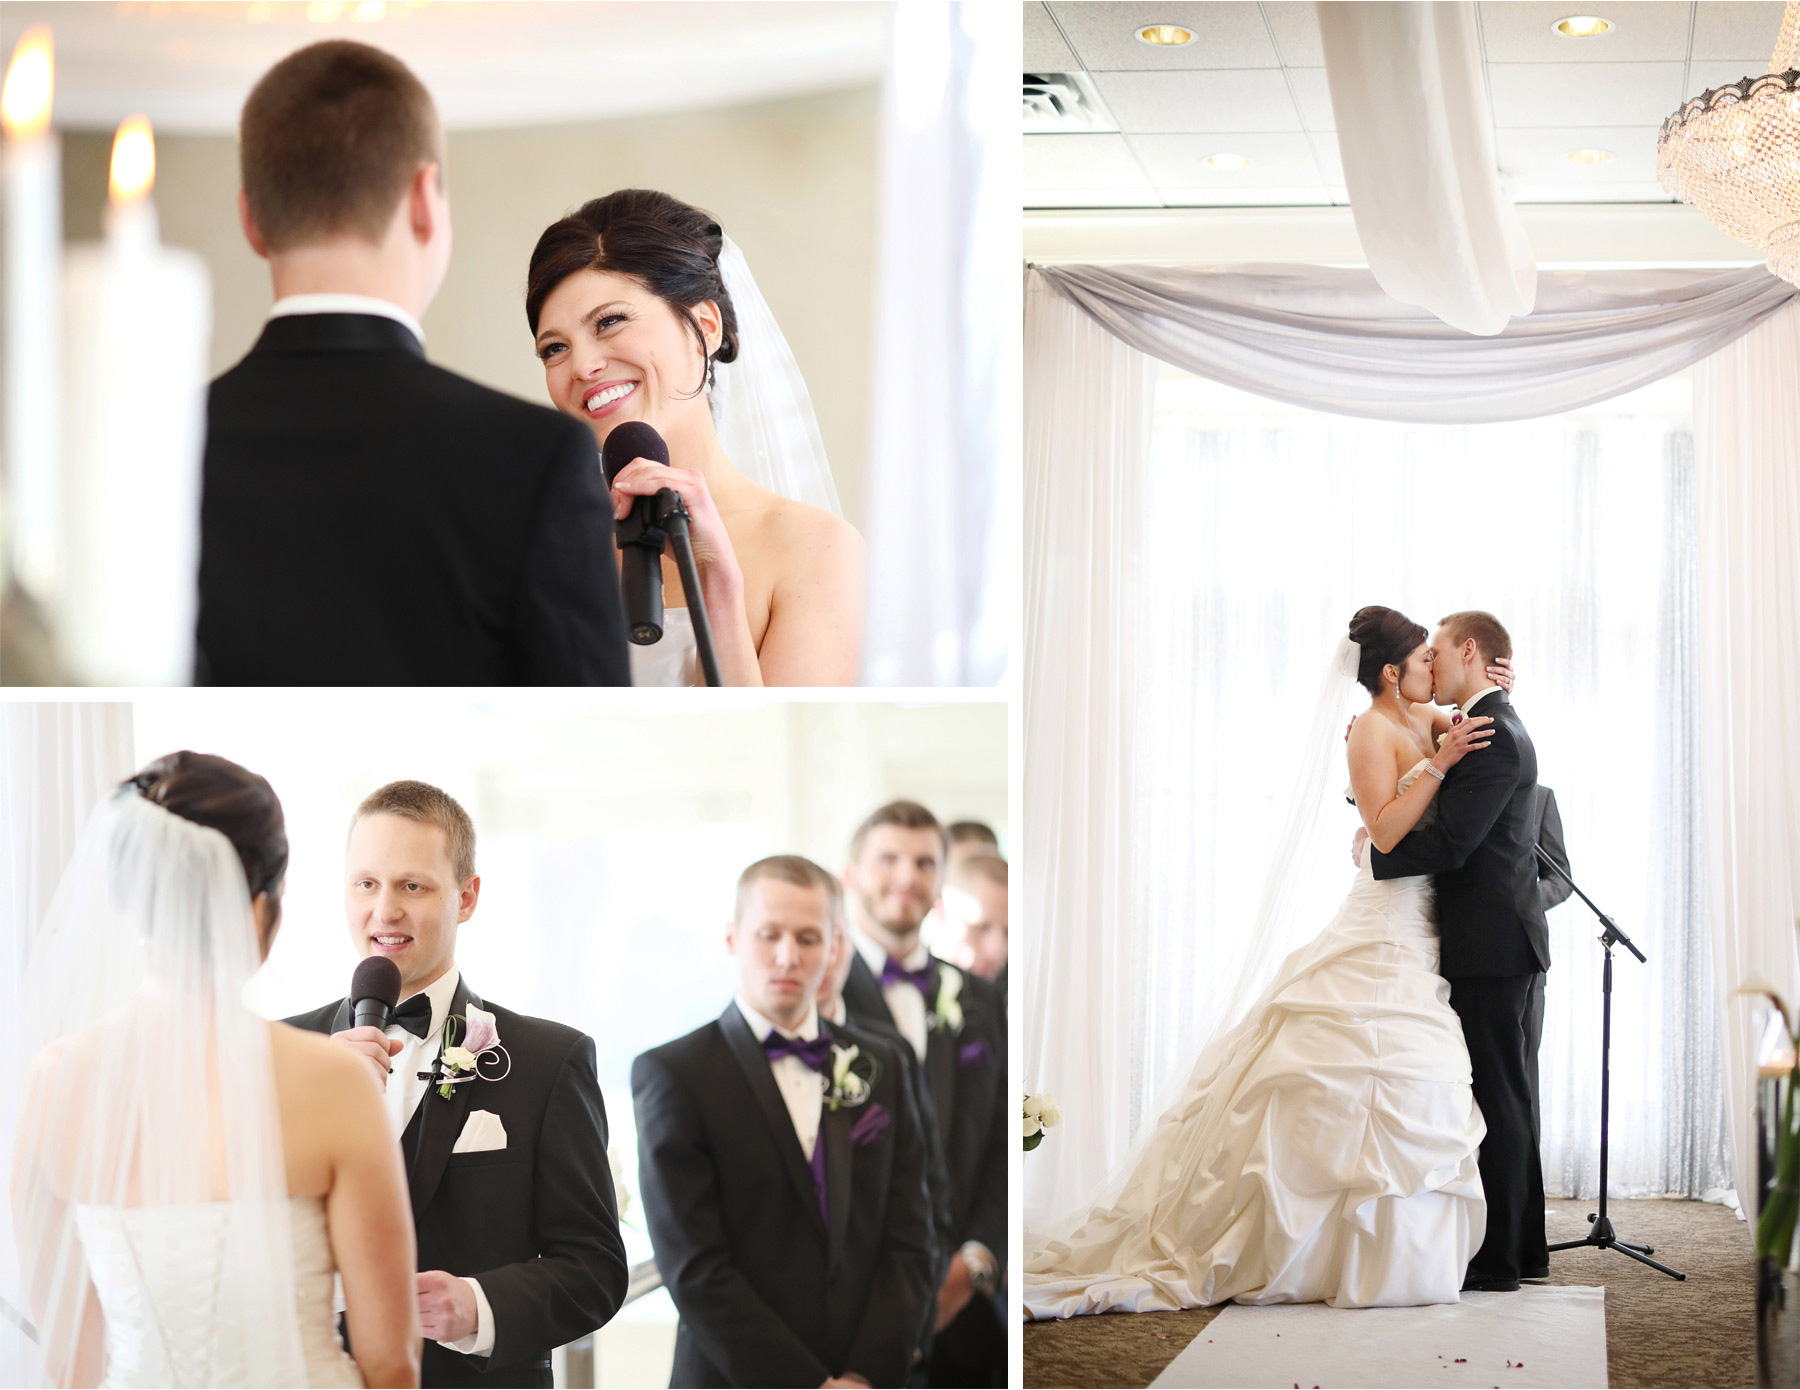 11-Eden-Prairie-Minnesota-Wedding-Photographer-by-Andrew-Vick-Photography-Fall-Autumn-Bearpath-Golf-Country-Club-Ceremony-Bride-Groom-Vows-Kiss-Brittany-and-Ryan.jpg